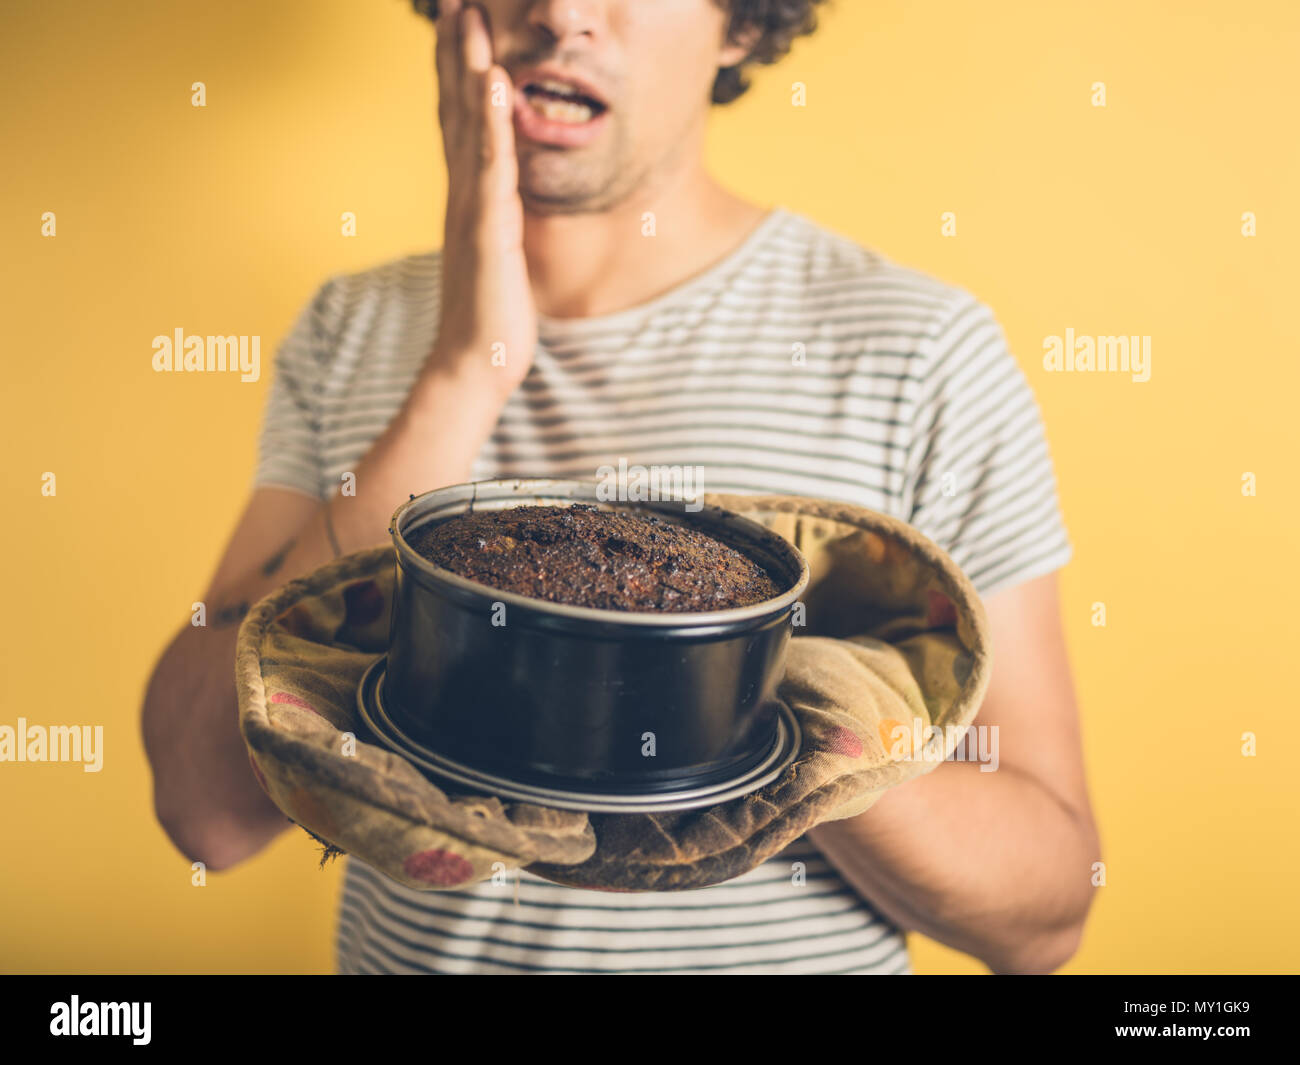 An upset young man is holding a burnt cake - Stock Image